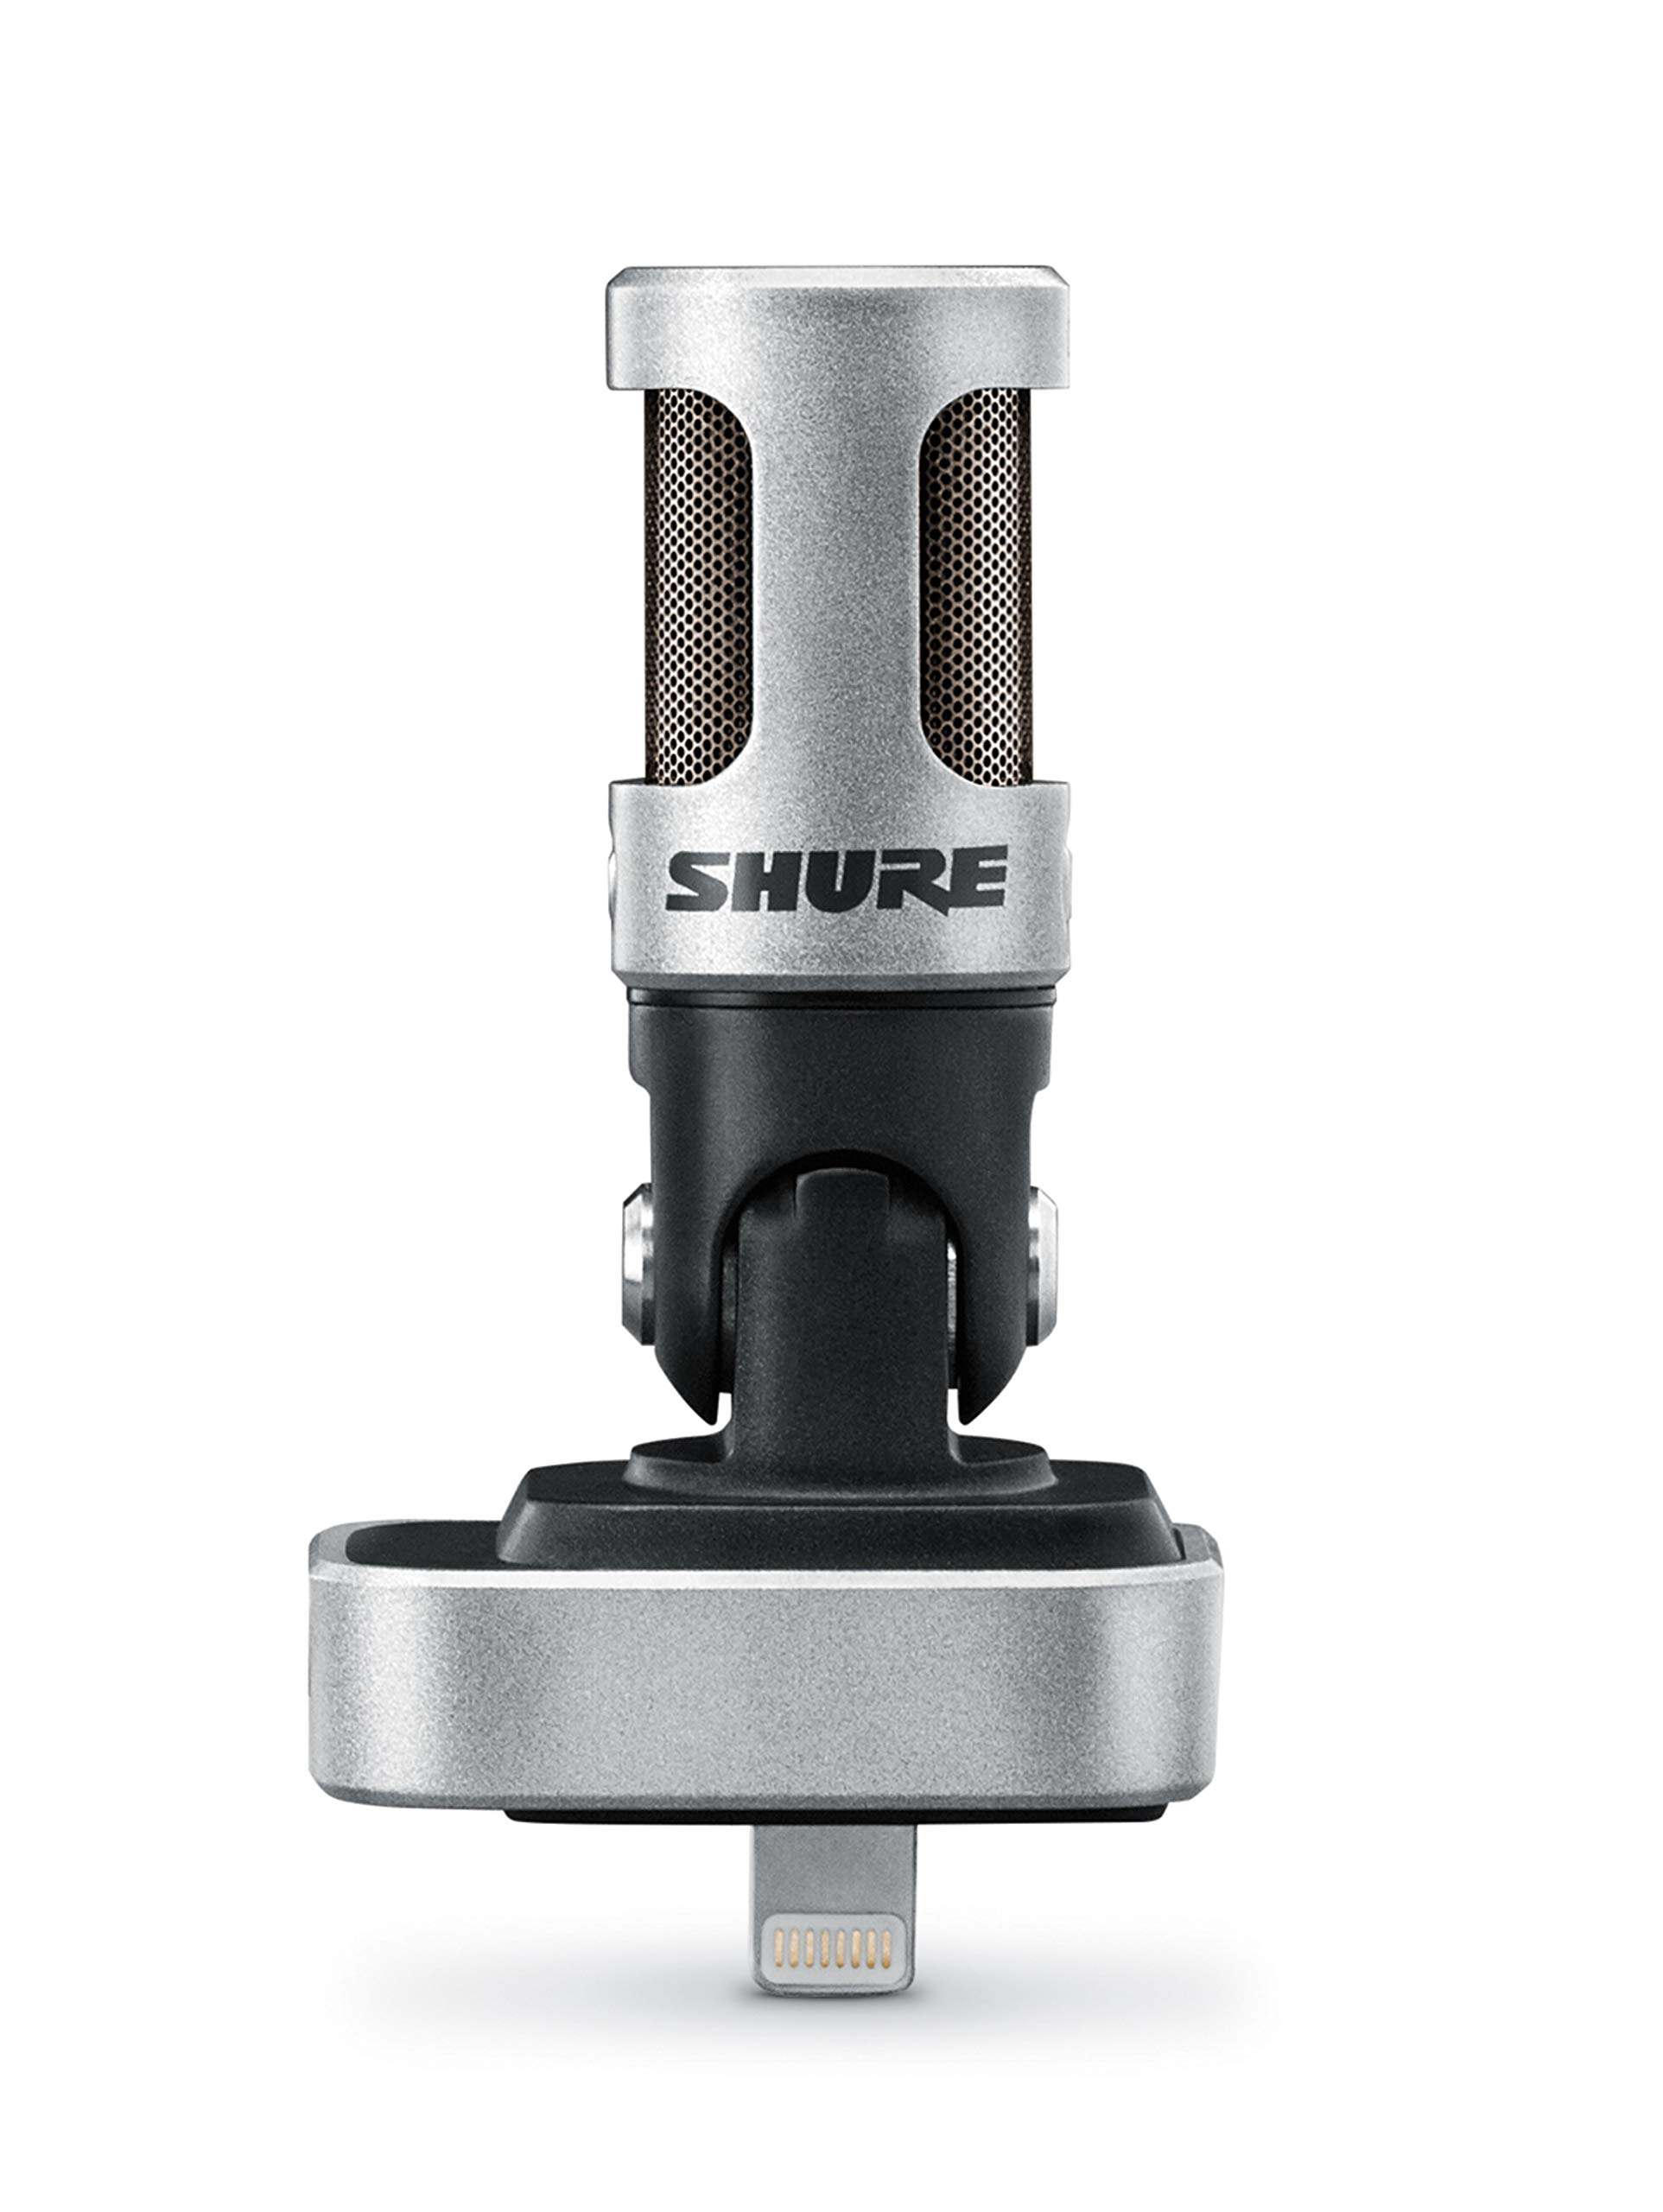 Shure MV88 iOS Digital Stereo Condenser Microphone by Shure (Image #1)